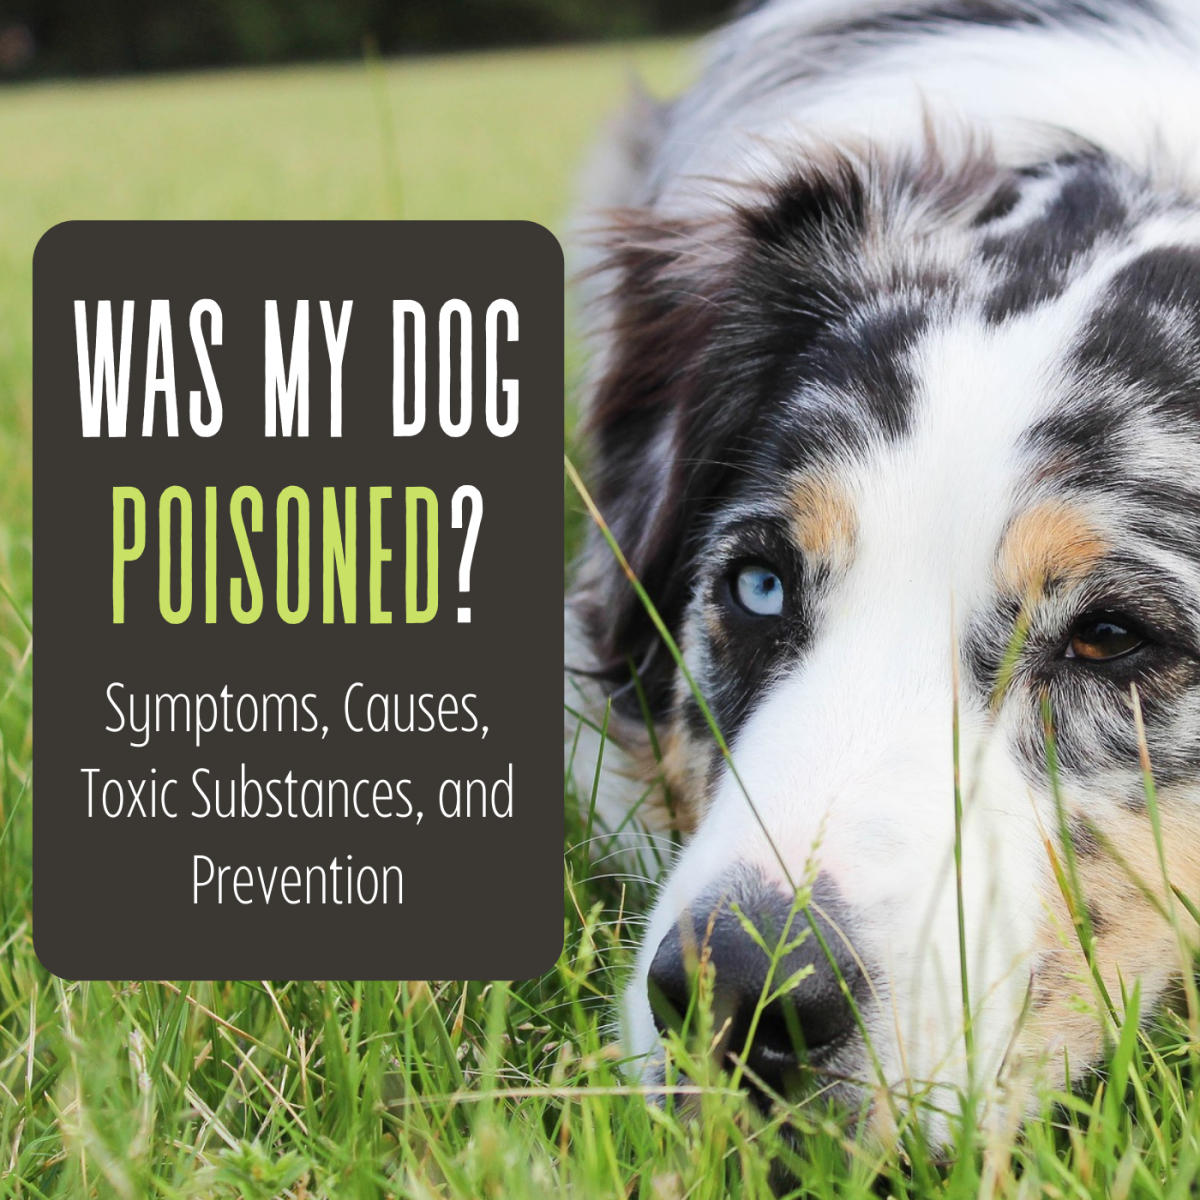 Do you think your dog may be experiencing symptoms of poisoning? Here's how to tell and what to do about it.